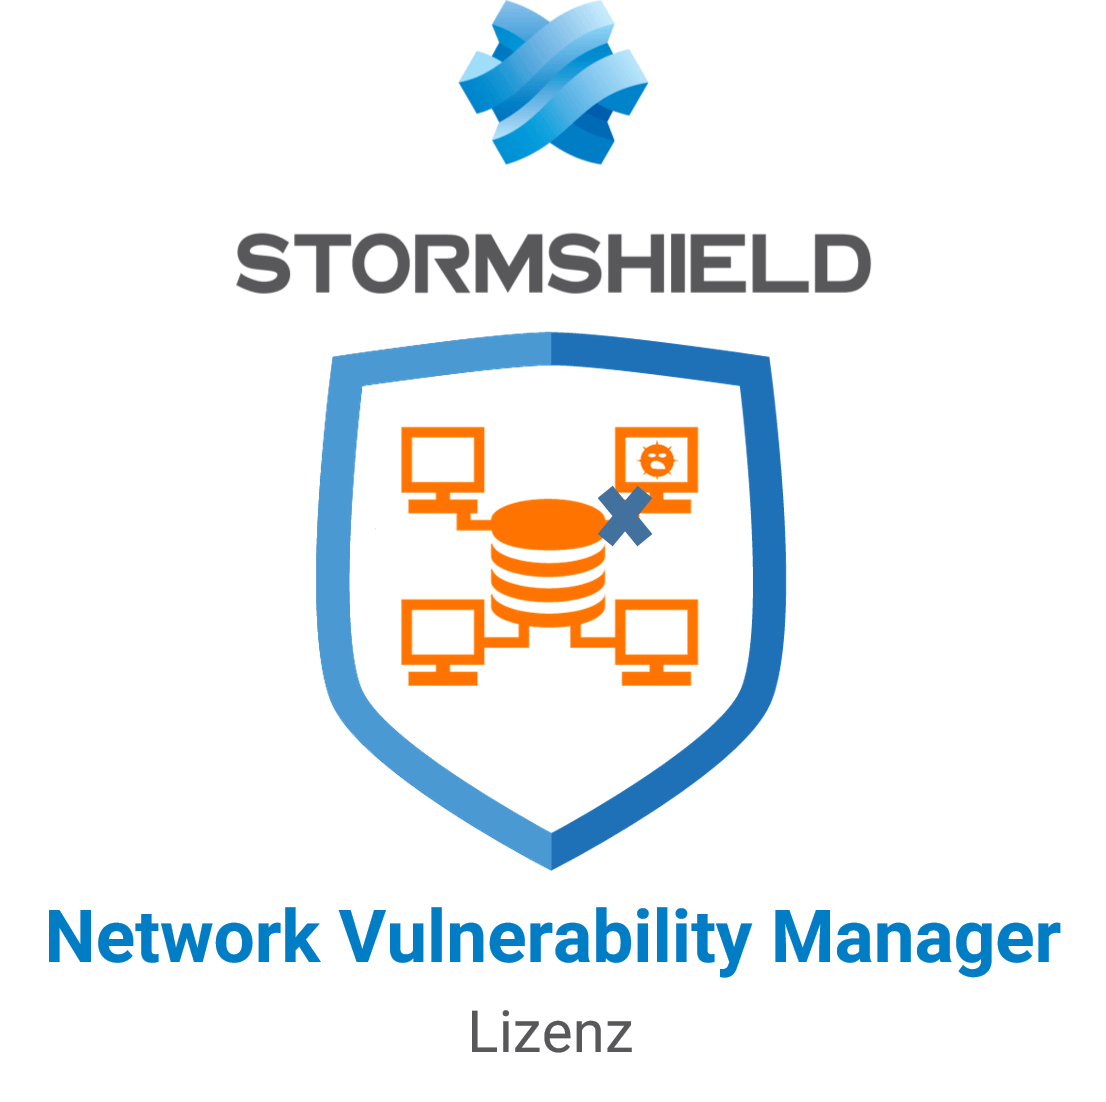 Stormshield SN510 Network Vulnerability Manager option